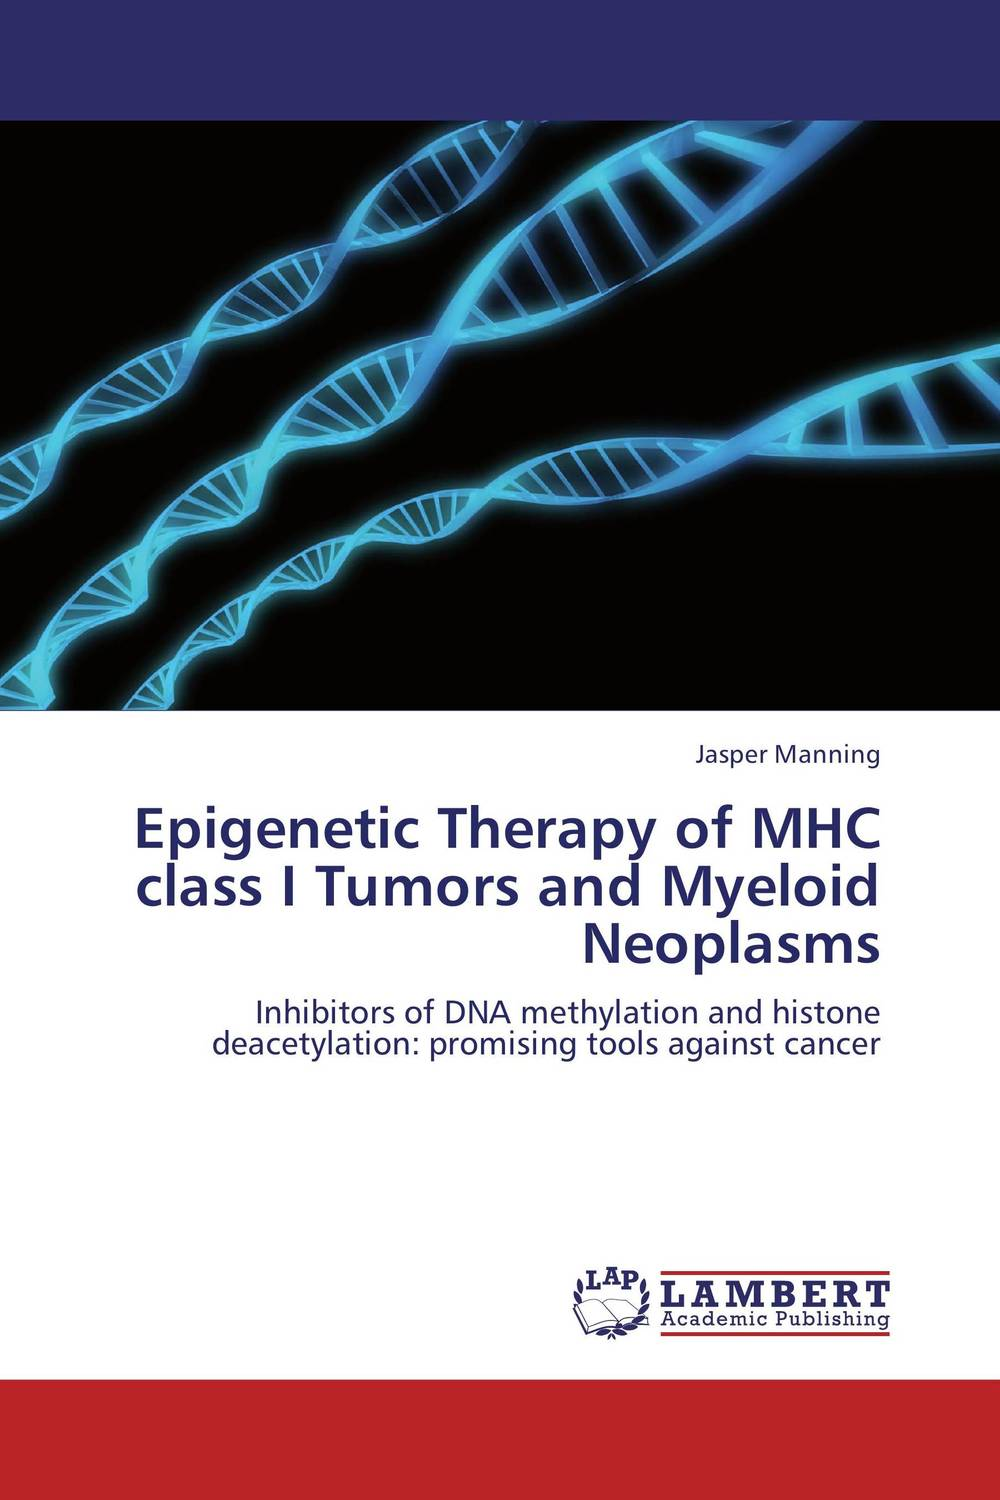 Epigenetic Therapy of MHC class I Tumors and Myeloid Neoplasms шампунь barex smoothing shampoo magnolia